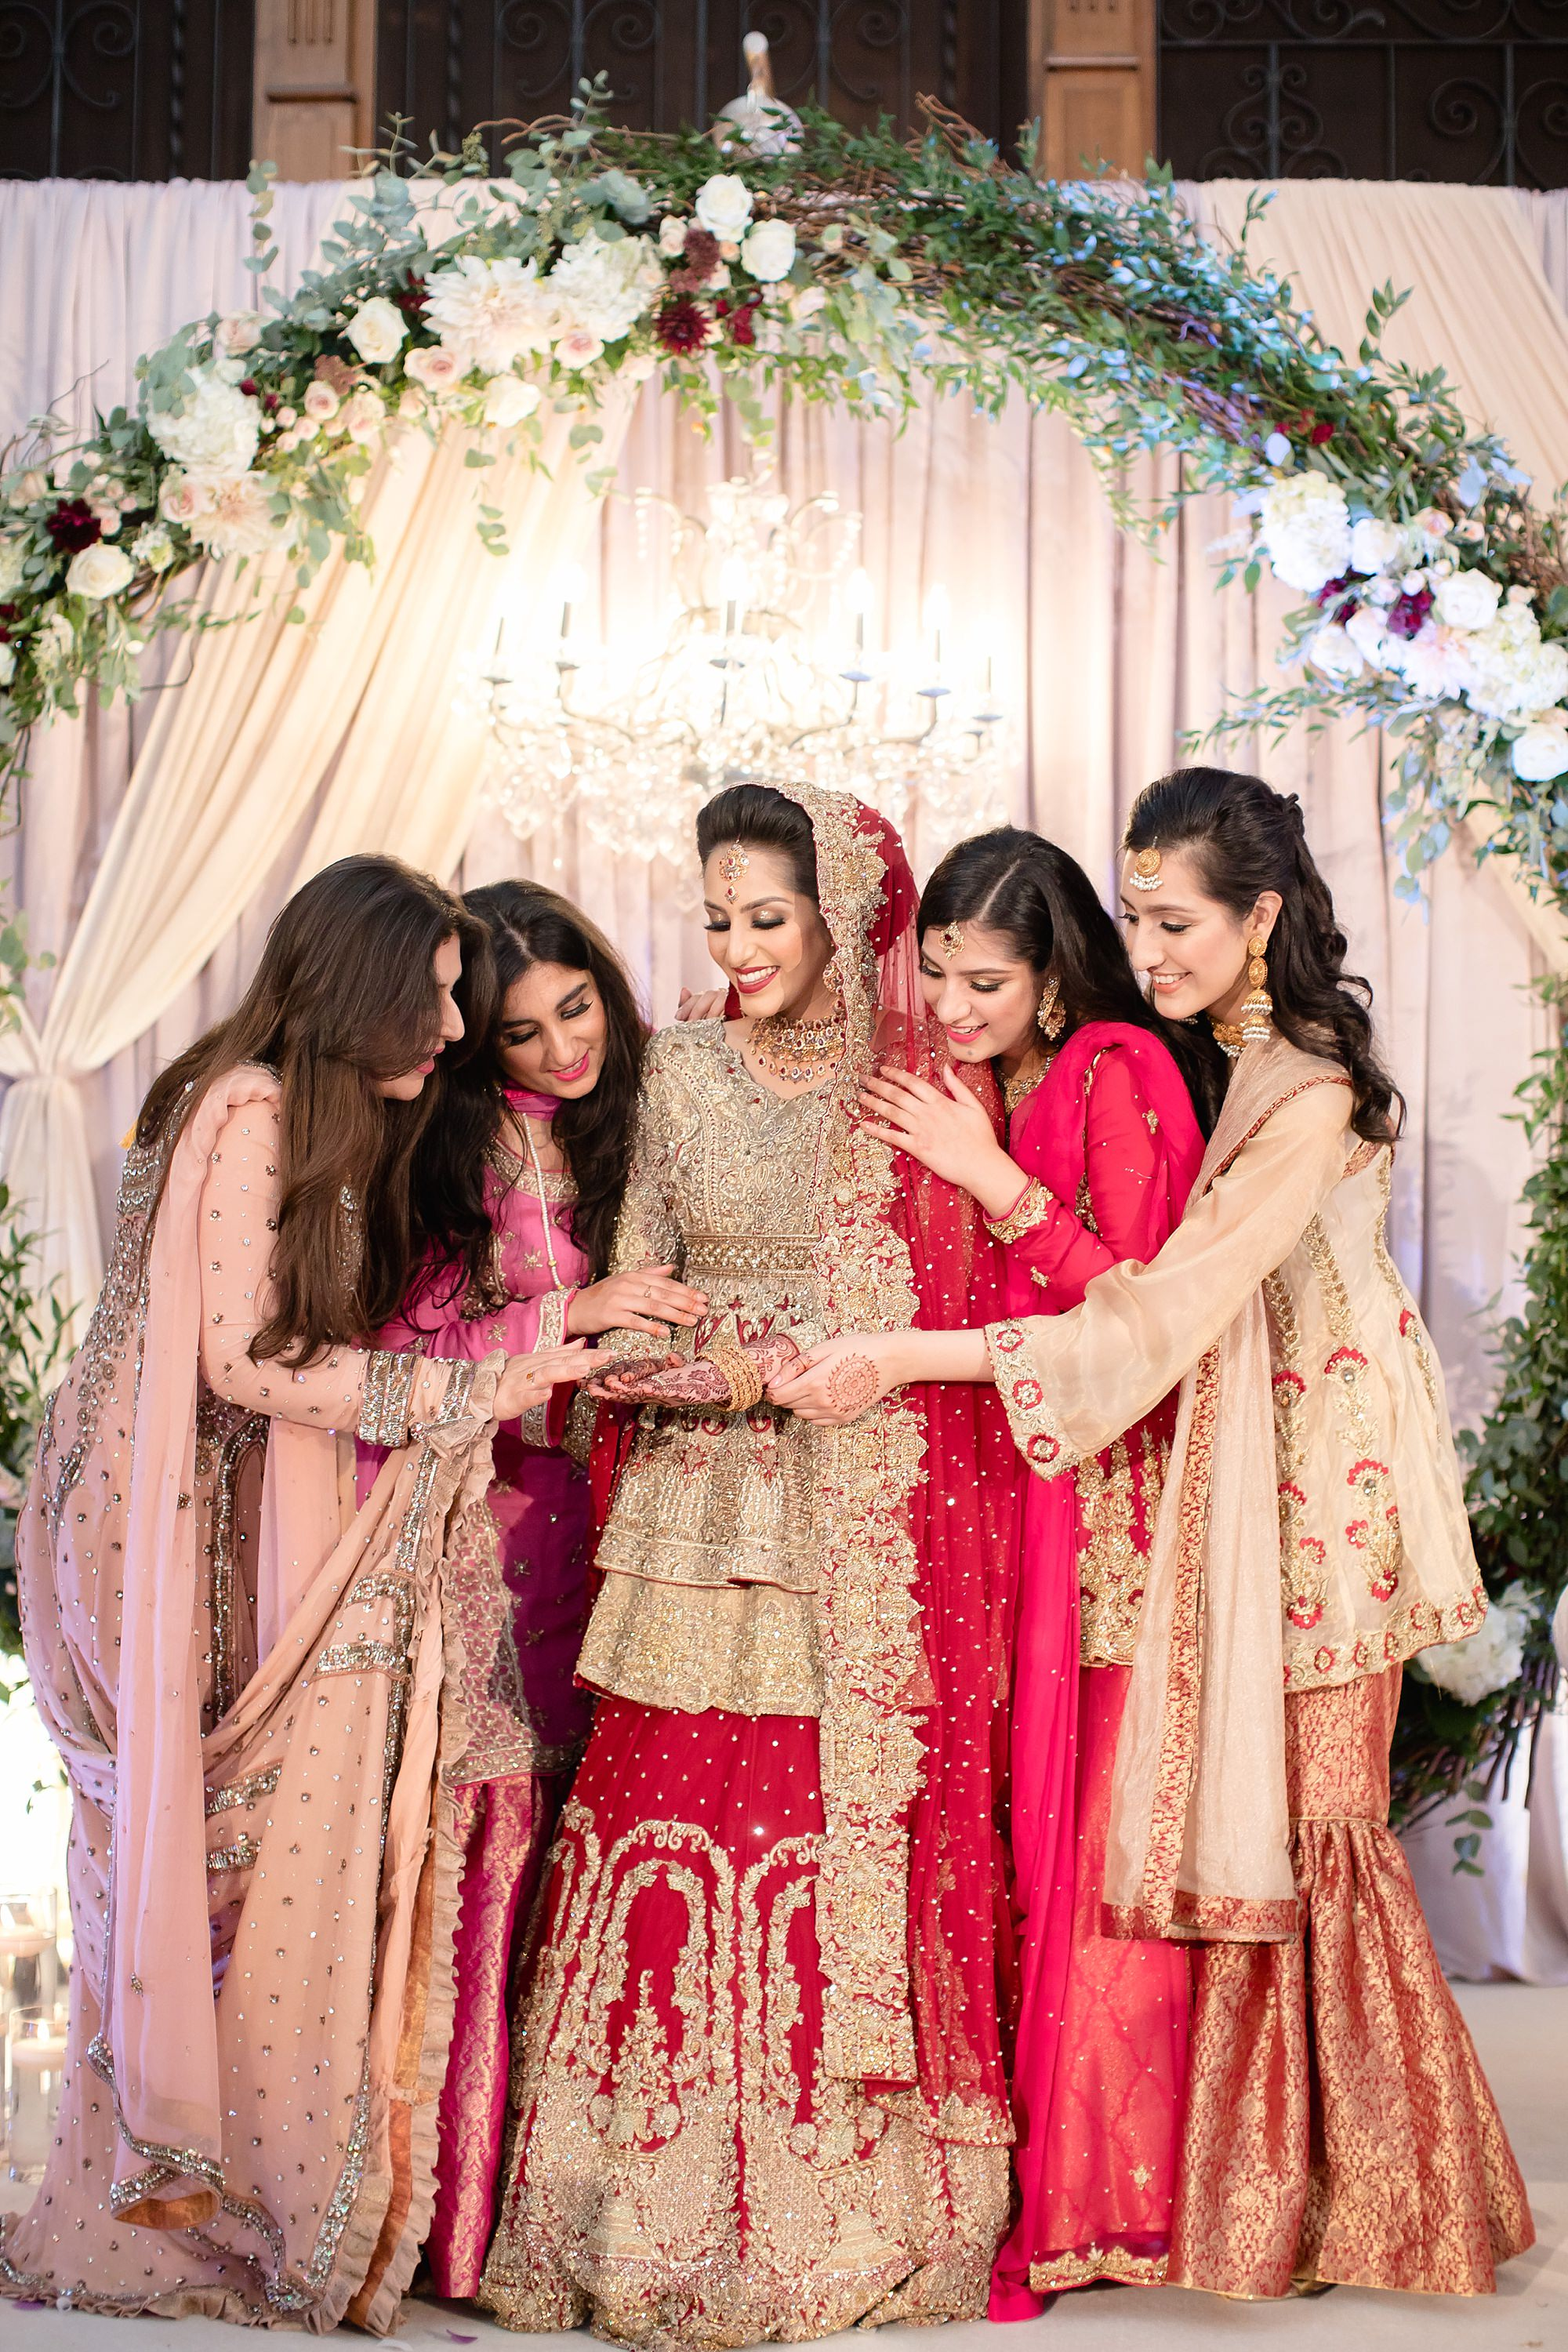 Pakistani bride and friends at wedding at Tatton Park Cheshire